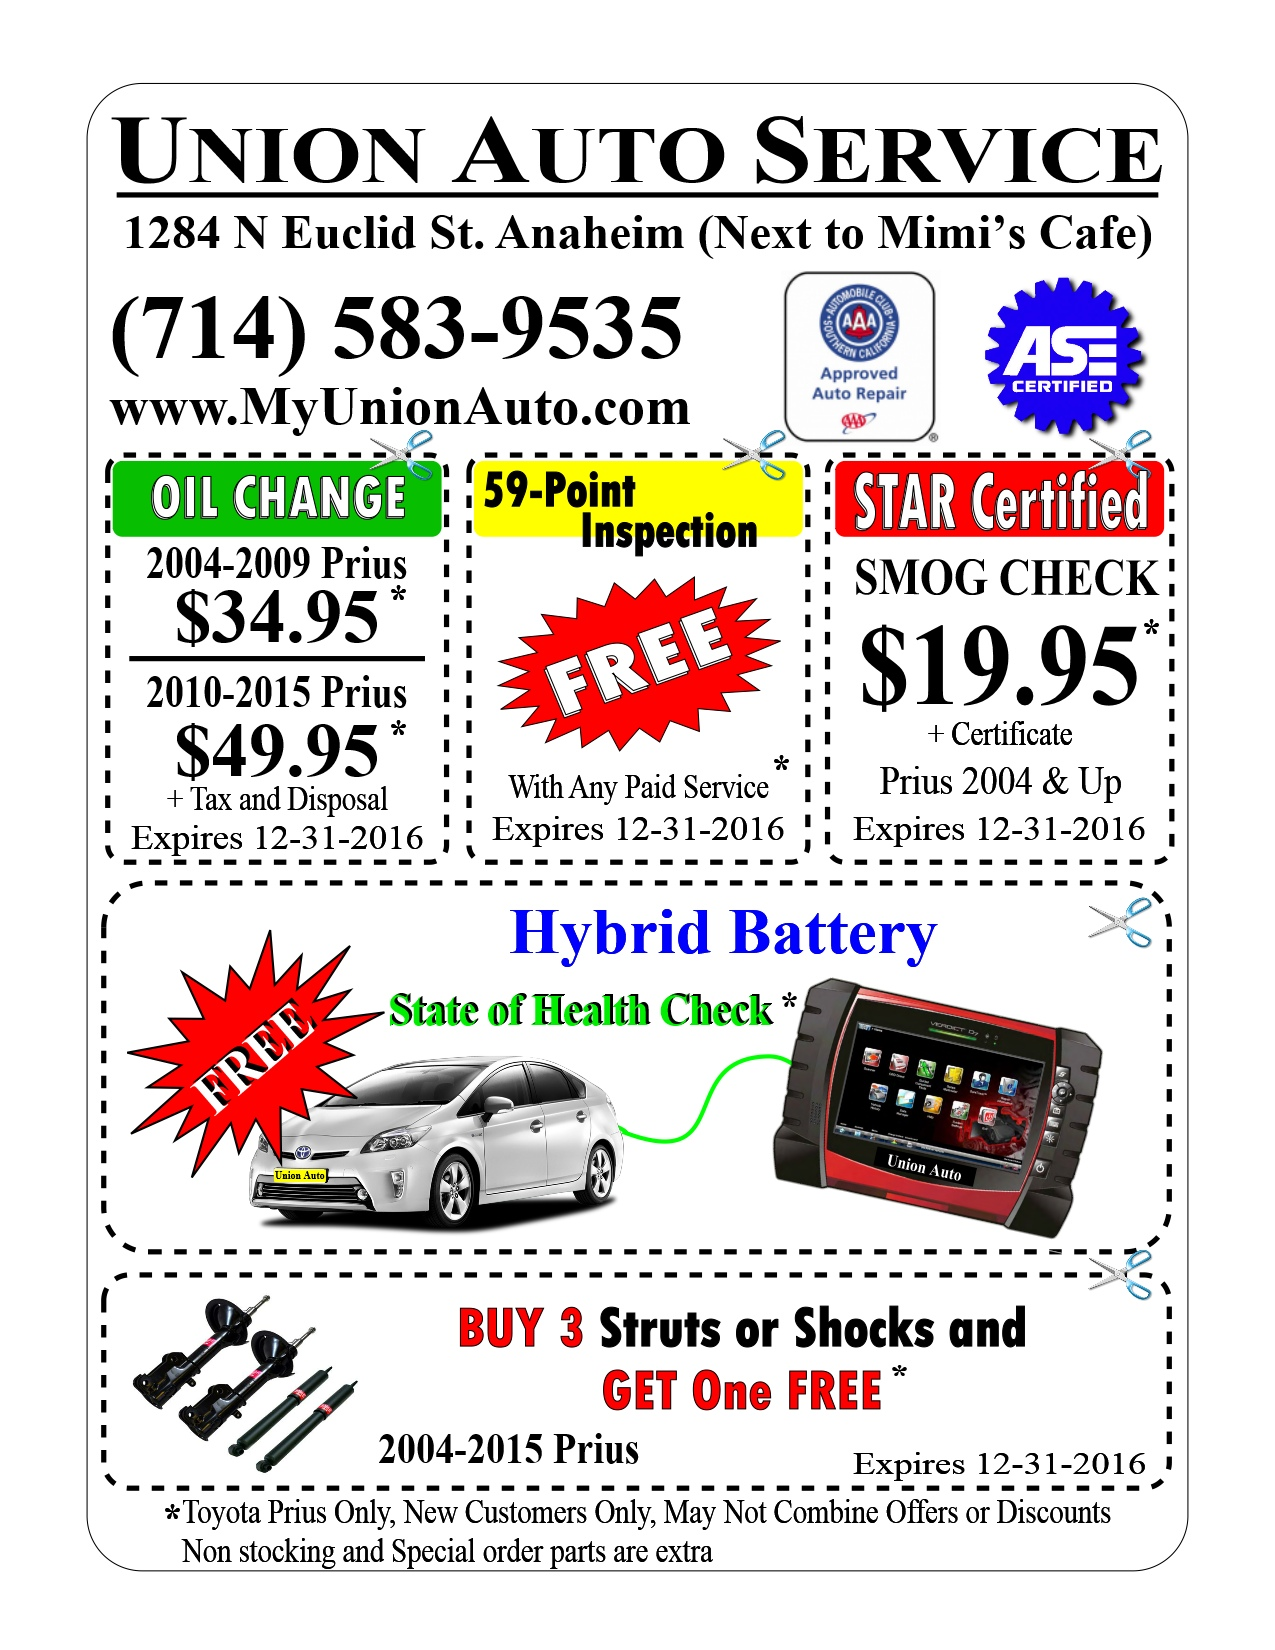 Free Hybrid Battery Test Prius Maintenance Required Oil Change Coupon